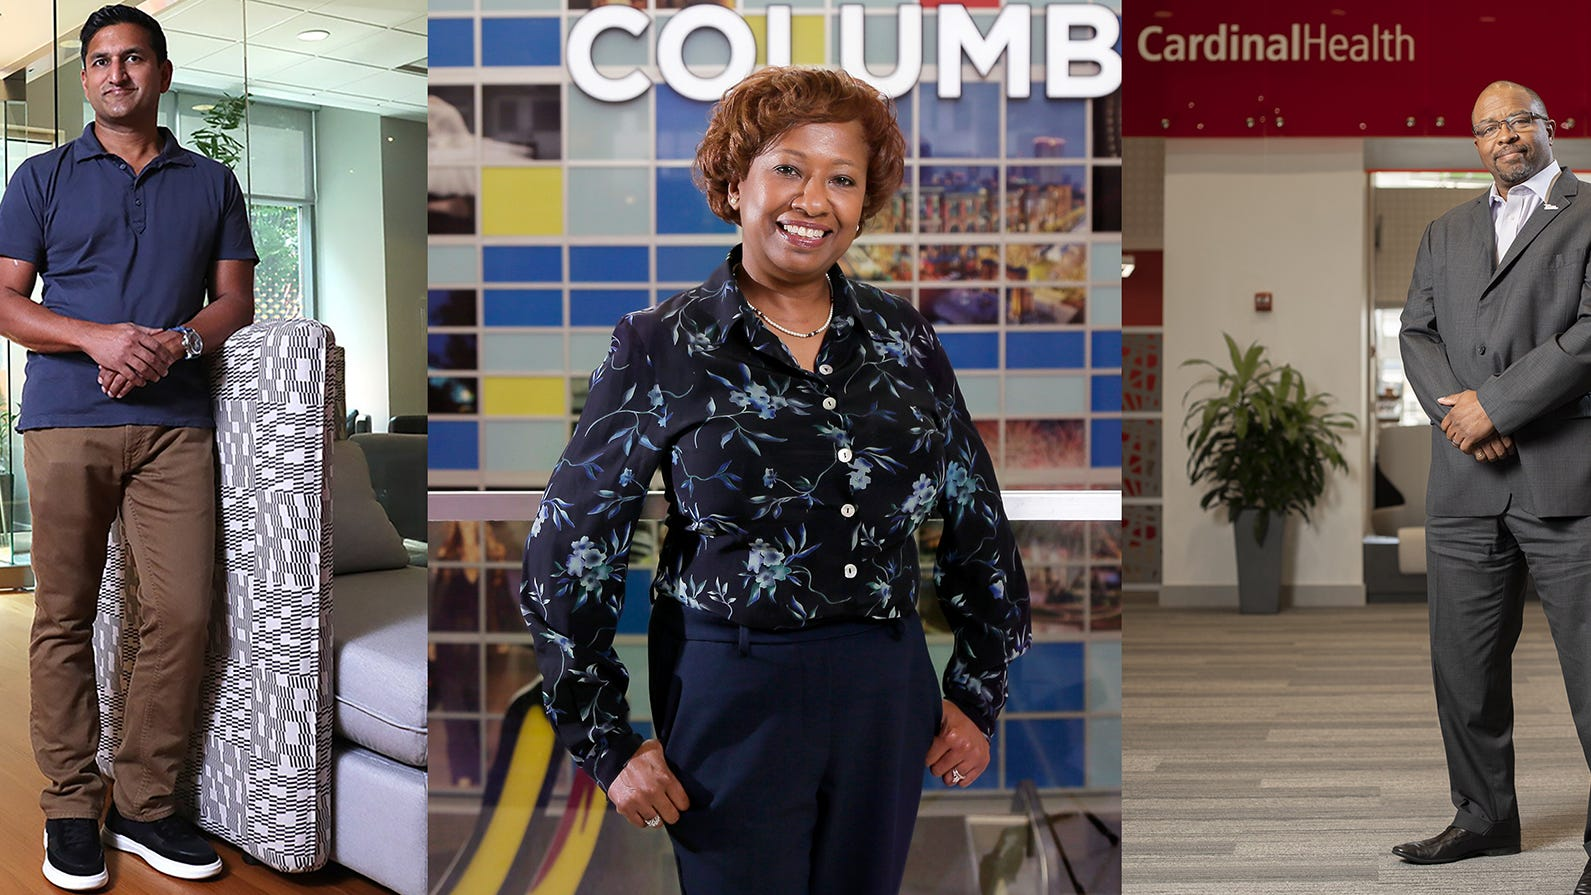 www.dispatch.com: Corporate diversity: Change takes time. Here's what some Columbus businesses have done in a year.